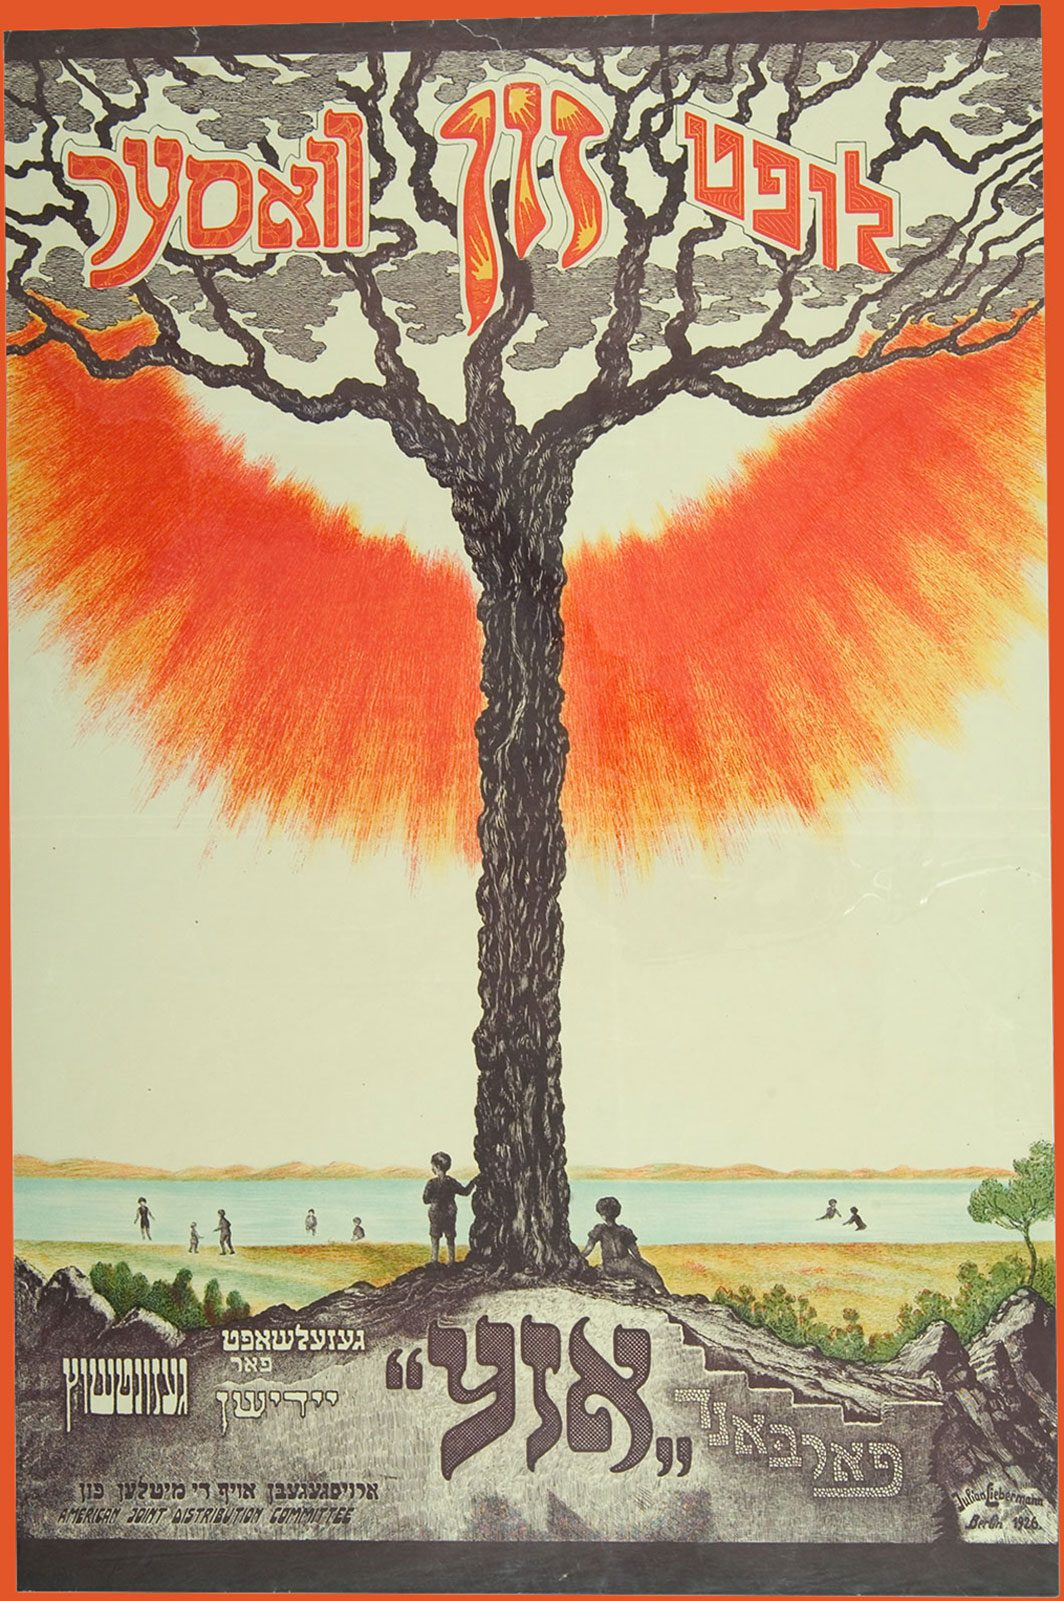 Poster promoting fresh air and sun